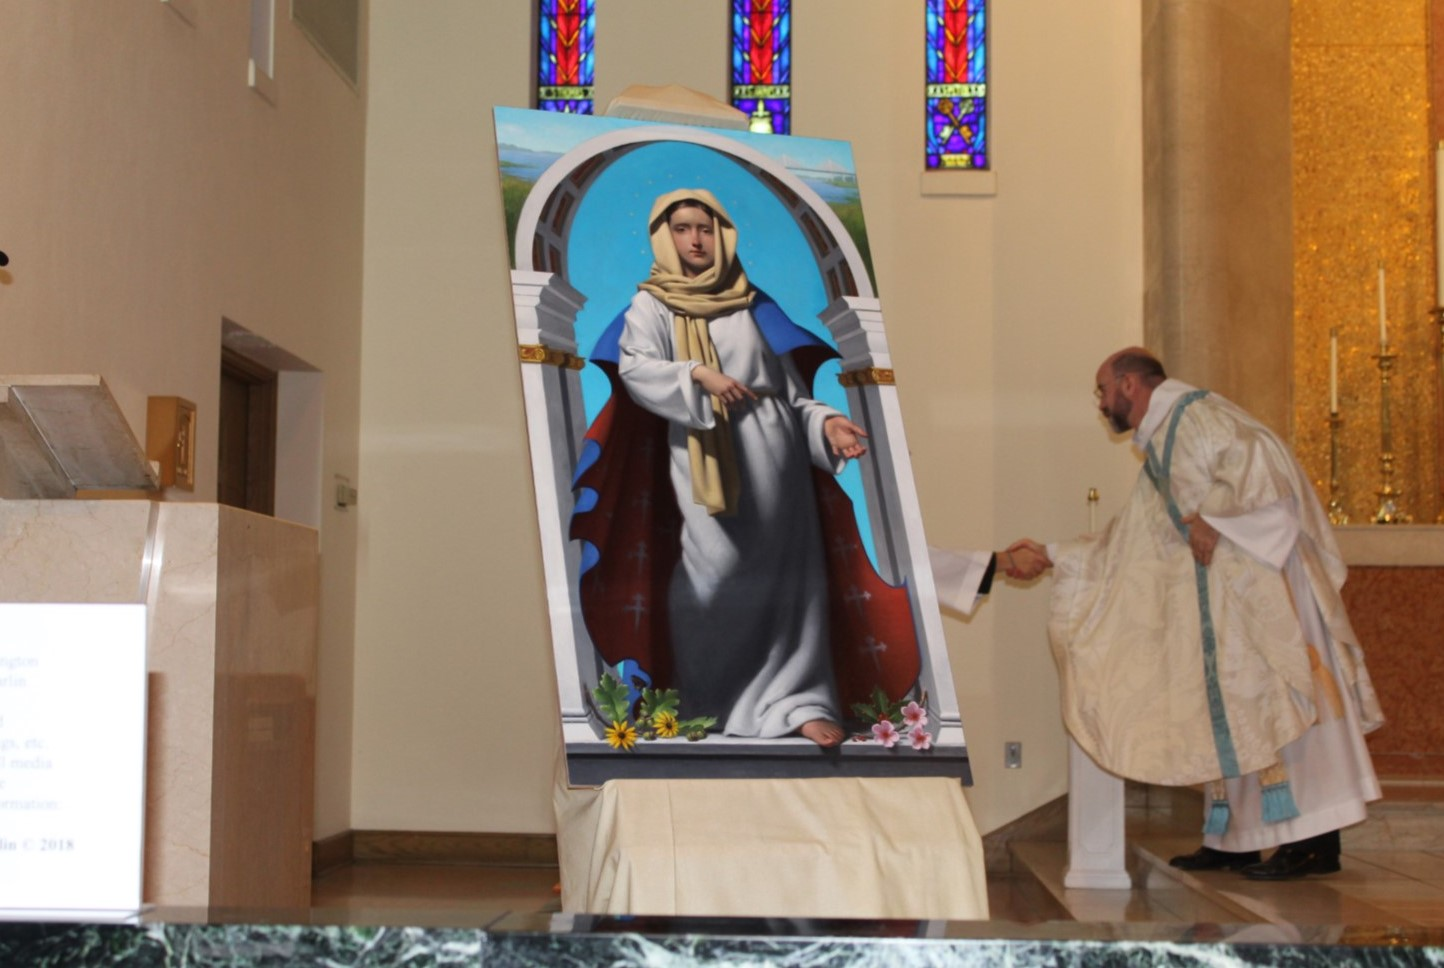 Kennett Square Artist Paints 'Our Lady of Wilmington' for Diocese in Delaware